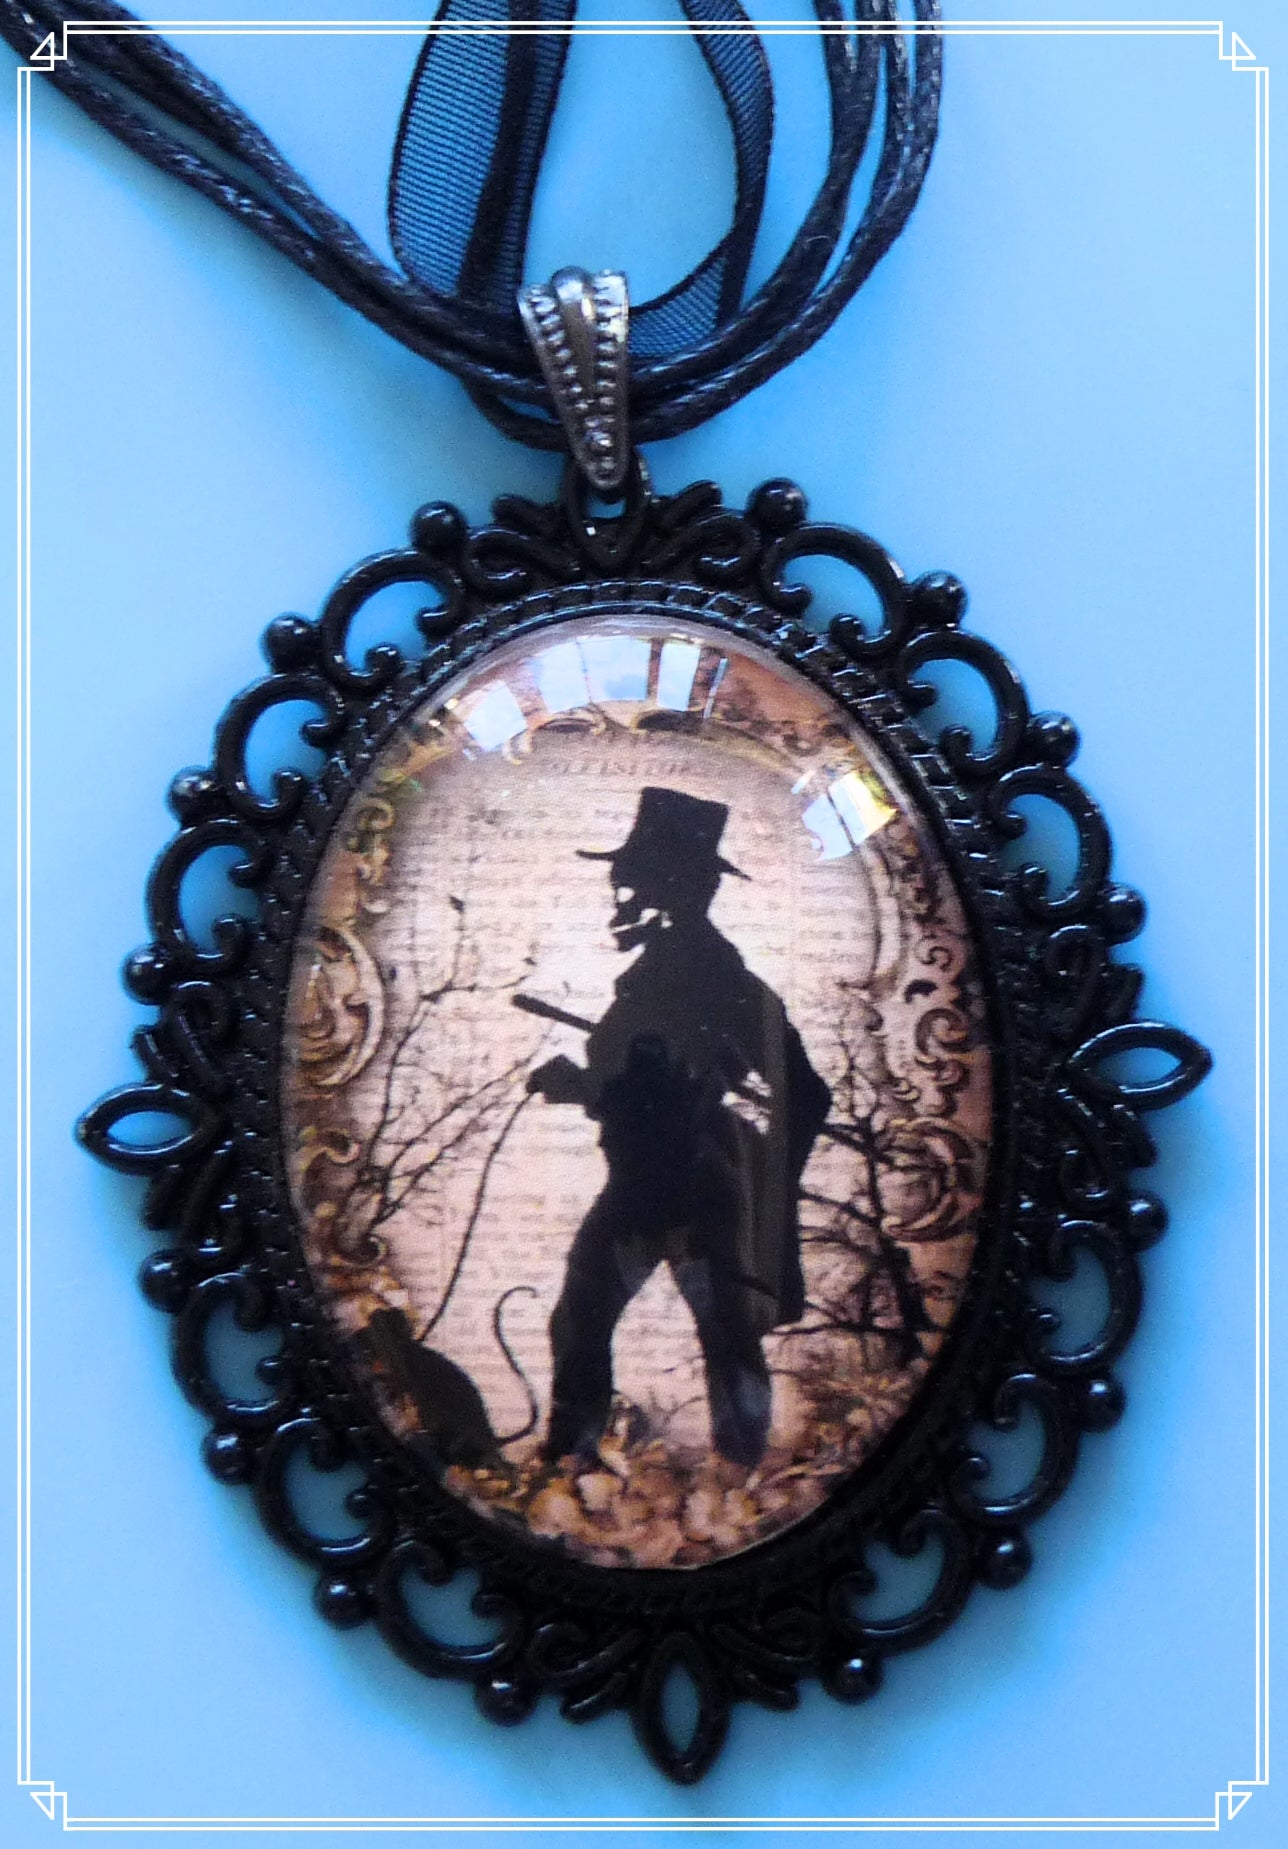 Gilbert the Skeletal Gentleman necklace